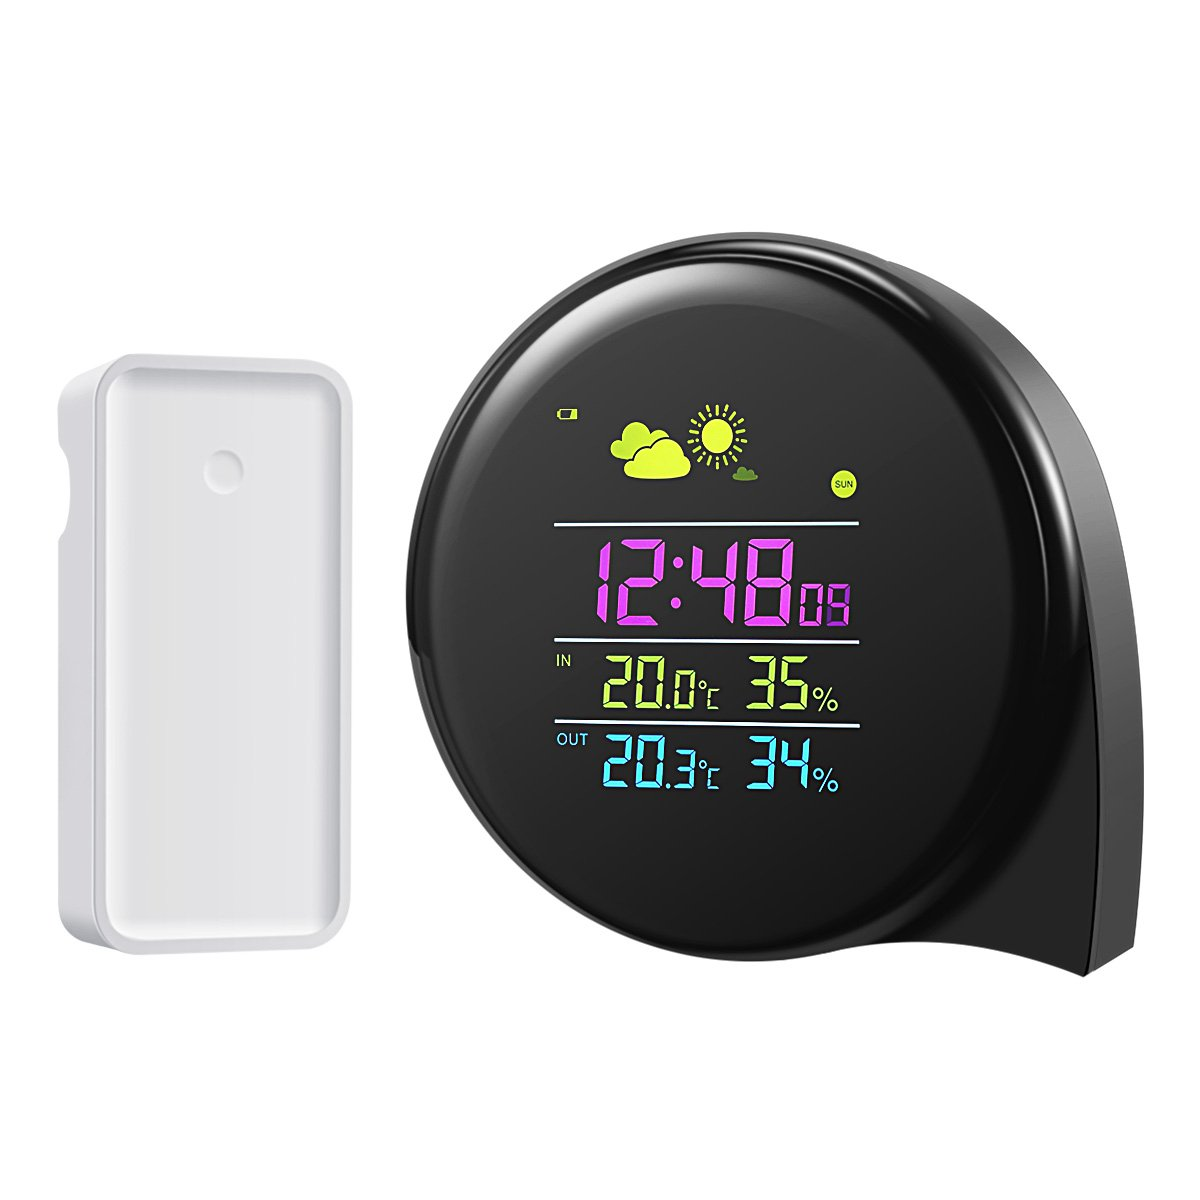 ORIA Weather Station, Wireless Weather Forecast Station, Indoor/Outdoor Thermometer with Remote Sensor, Dual Alarm, Pressure, Comma Shaped, Moon Phase, for Home and Office